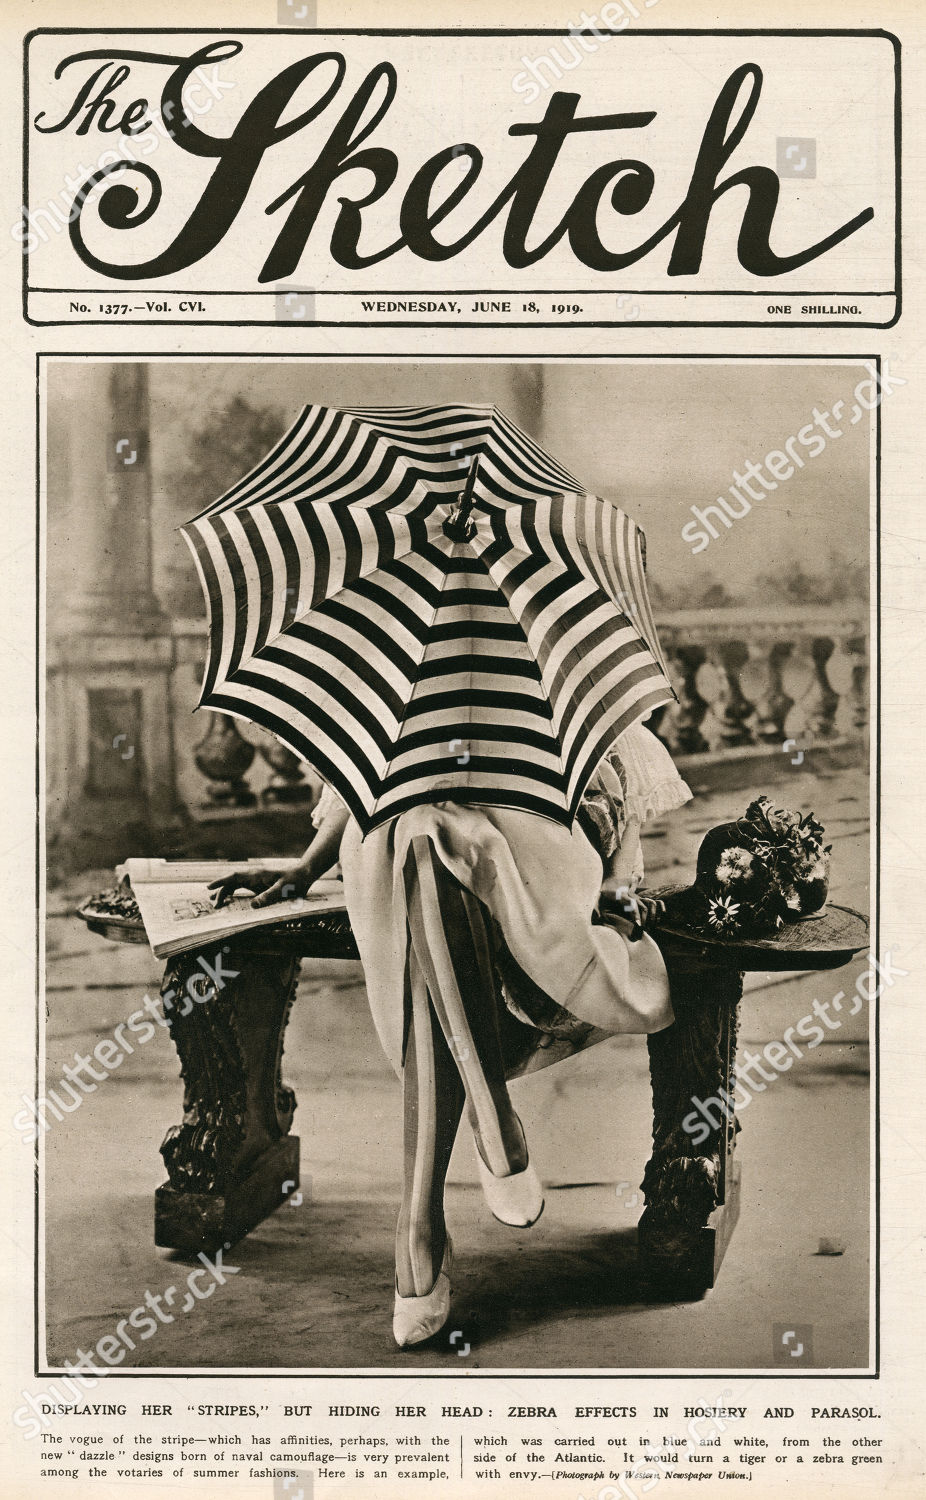 Zebra Effects Hosiery Parasol Front Cover Sketch Editorial Stock Photo Stock Image Shutterstock